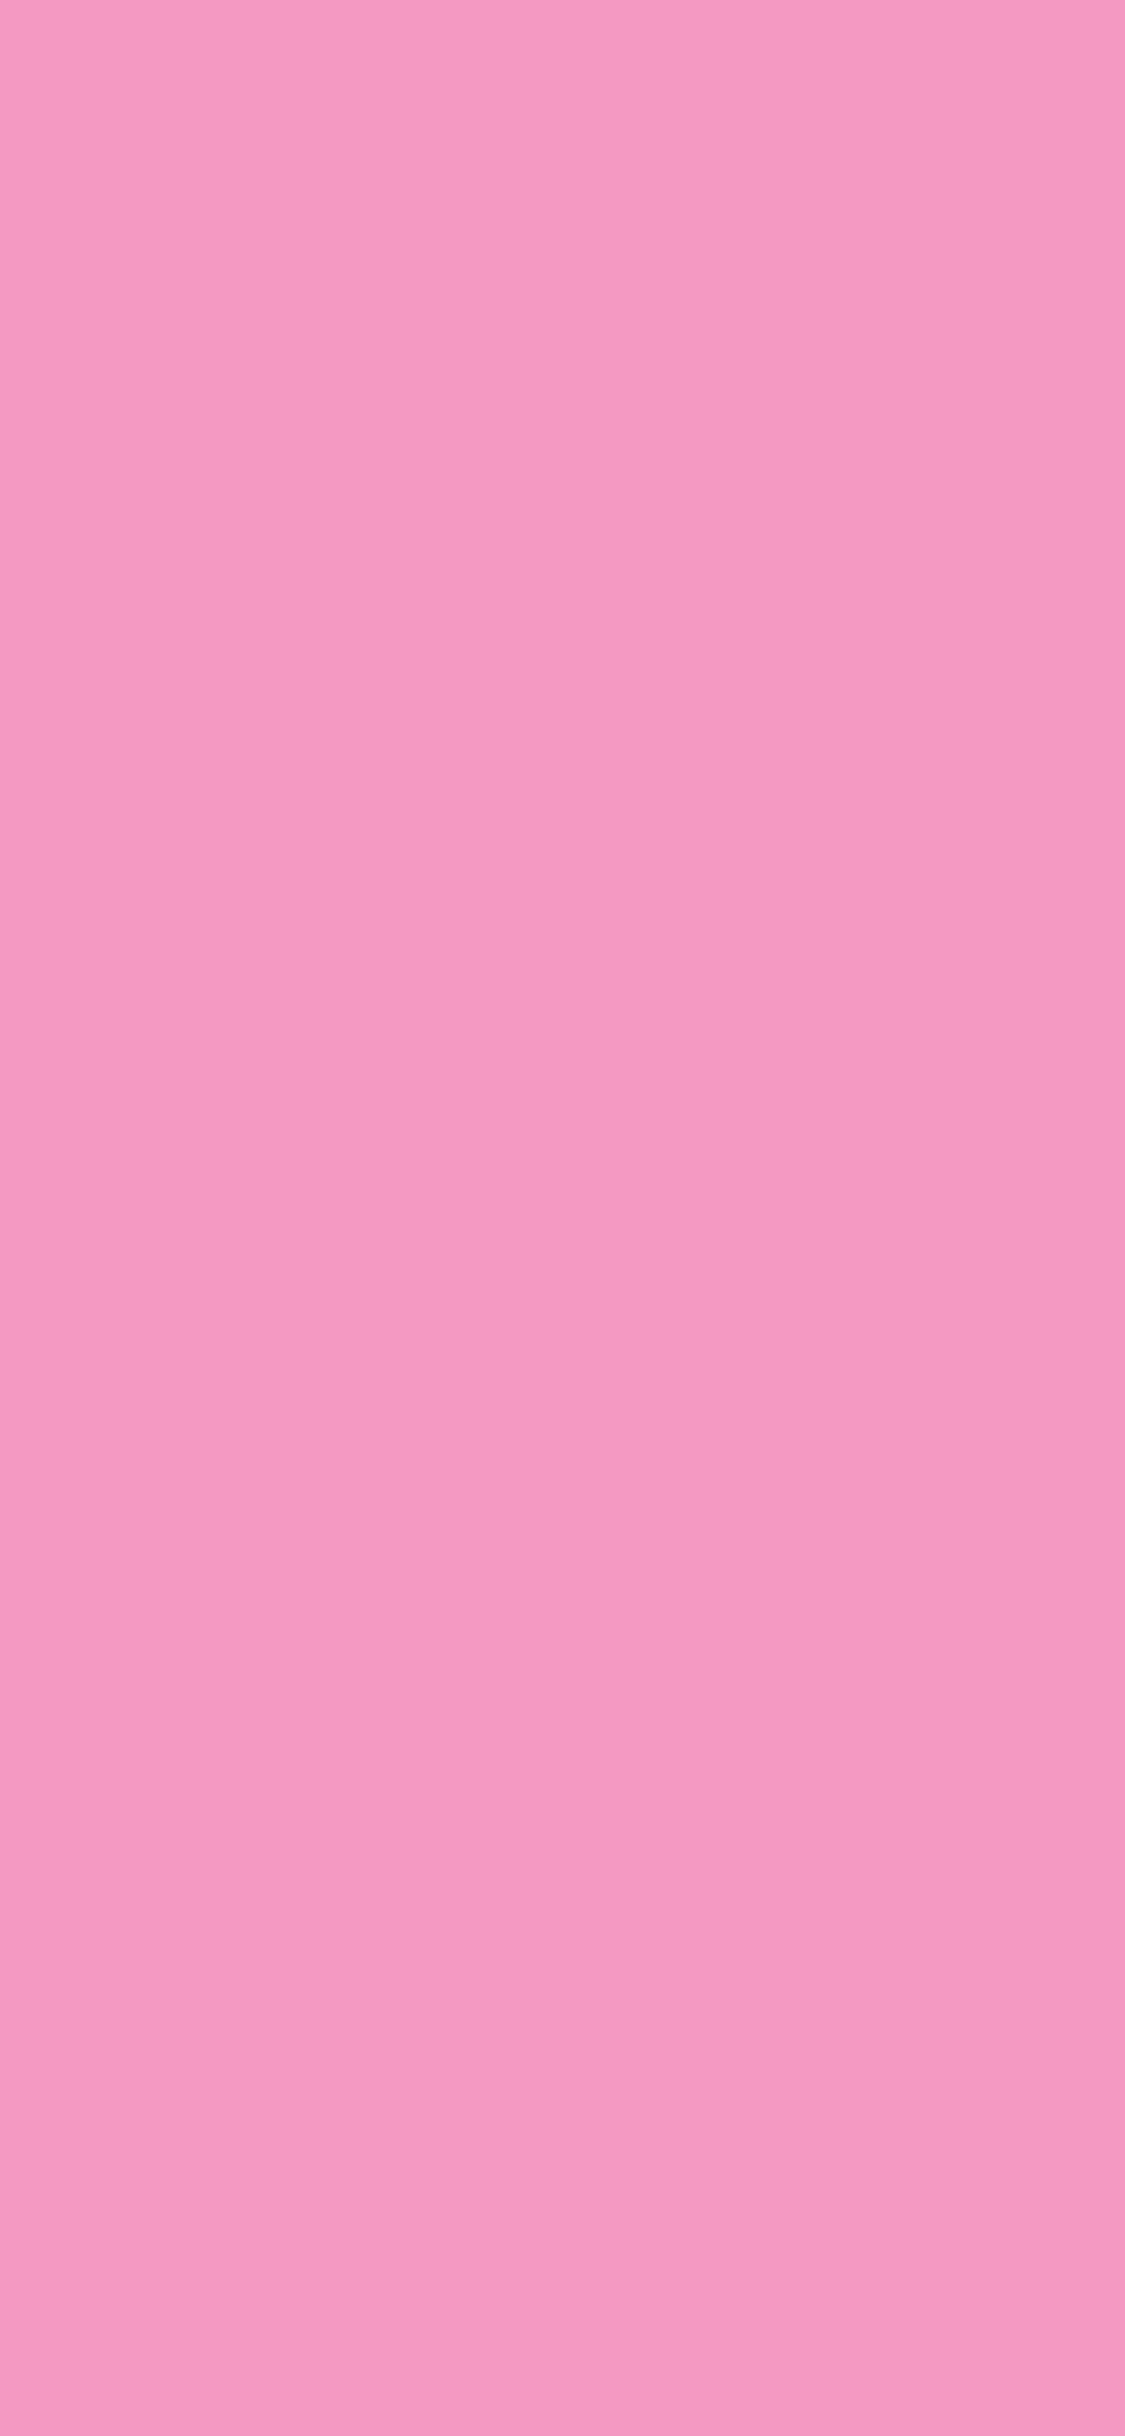 1125x2436 Pastel Magenta Solid Color Background